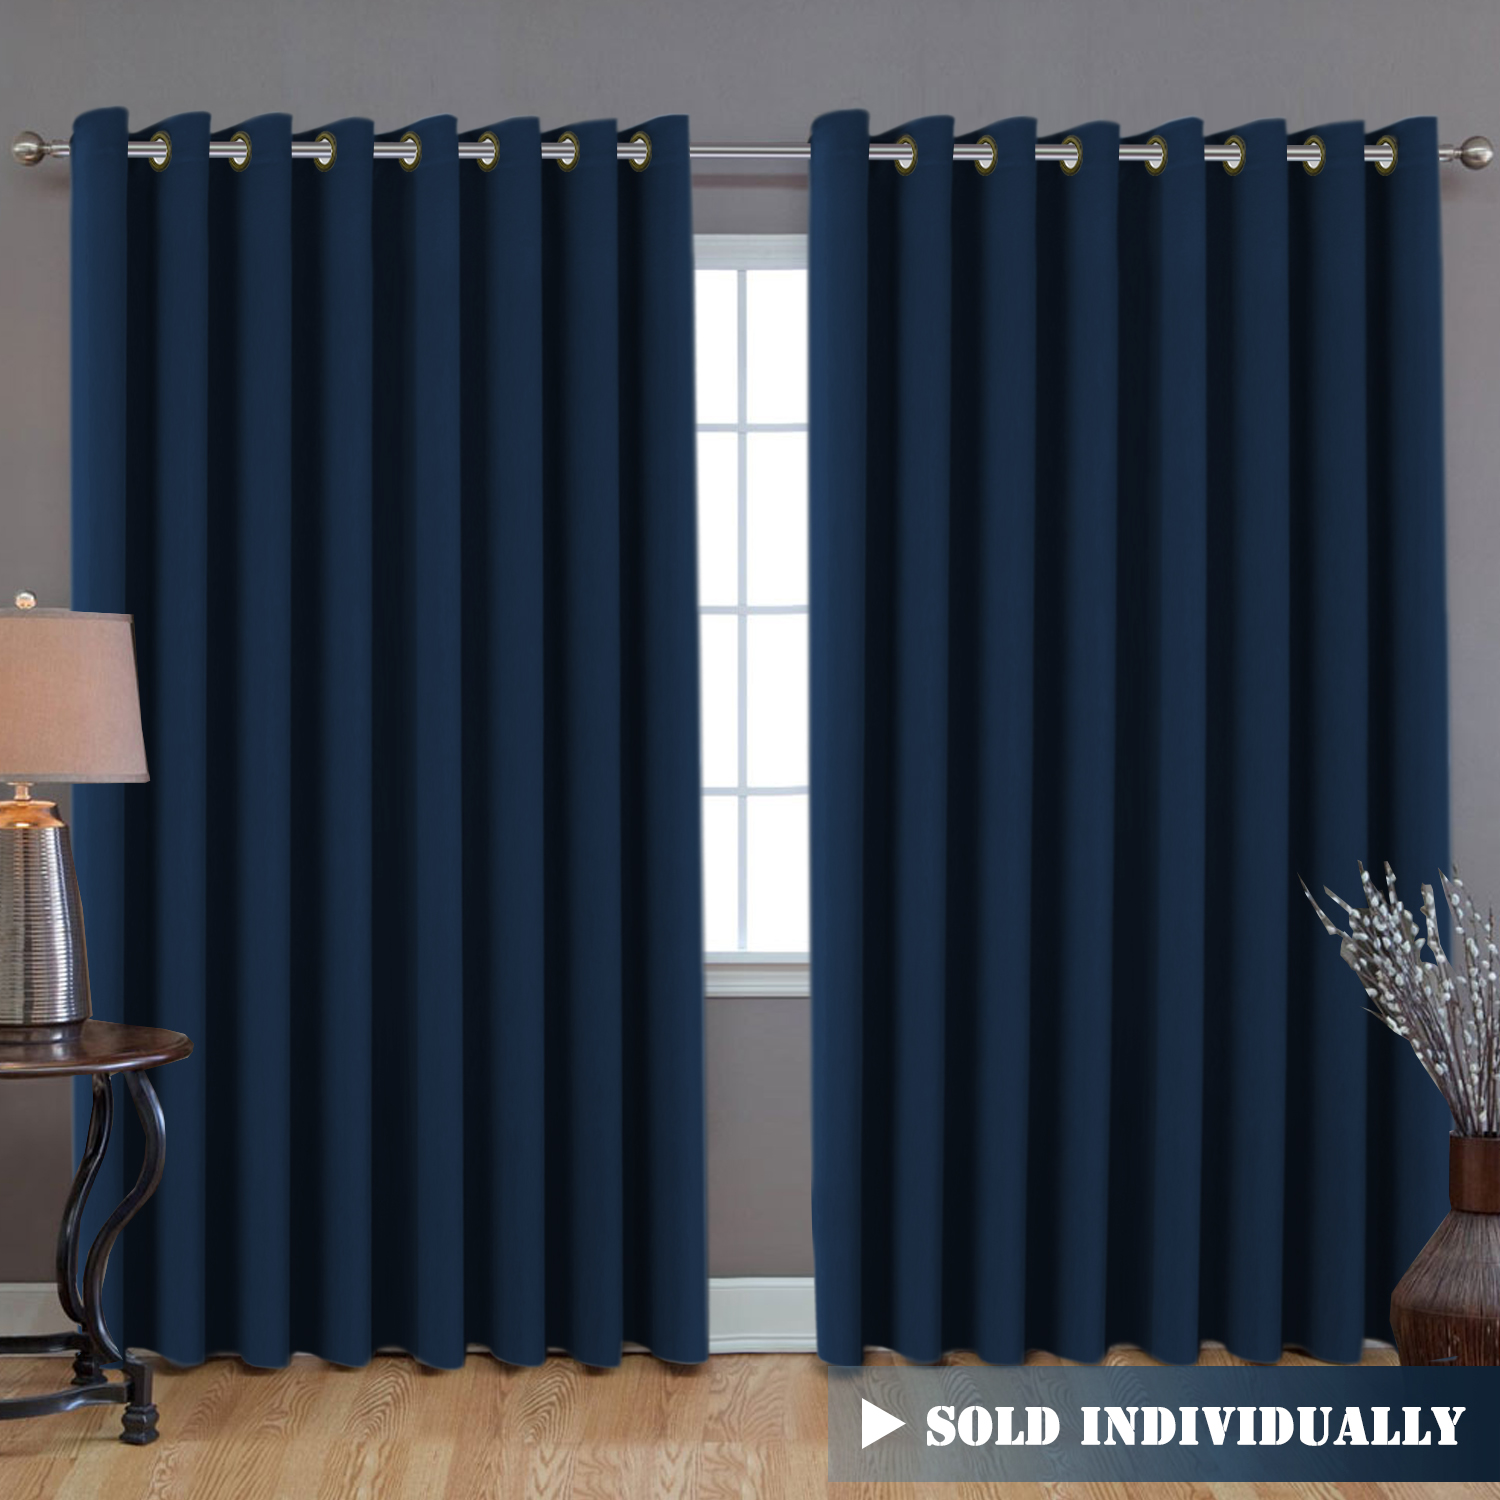 H Versailtex Ultra Blackout Wider Curtains Extra Long And Wide Thermal Insulated Large Window Panels 100 W X 108 L Premium Room Divider 9 Tall By 8 5 Wide Navy Blue Walmart Com